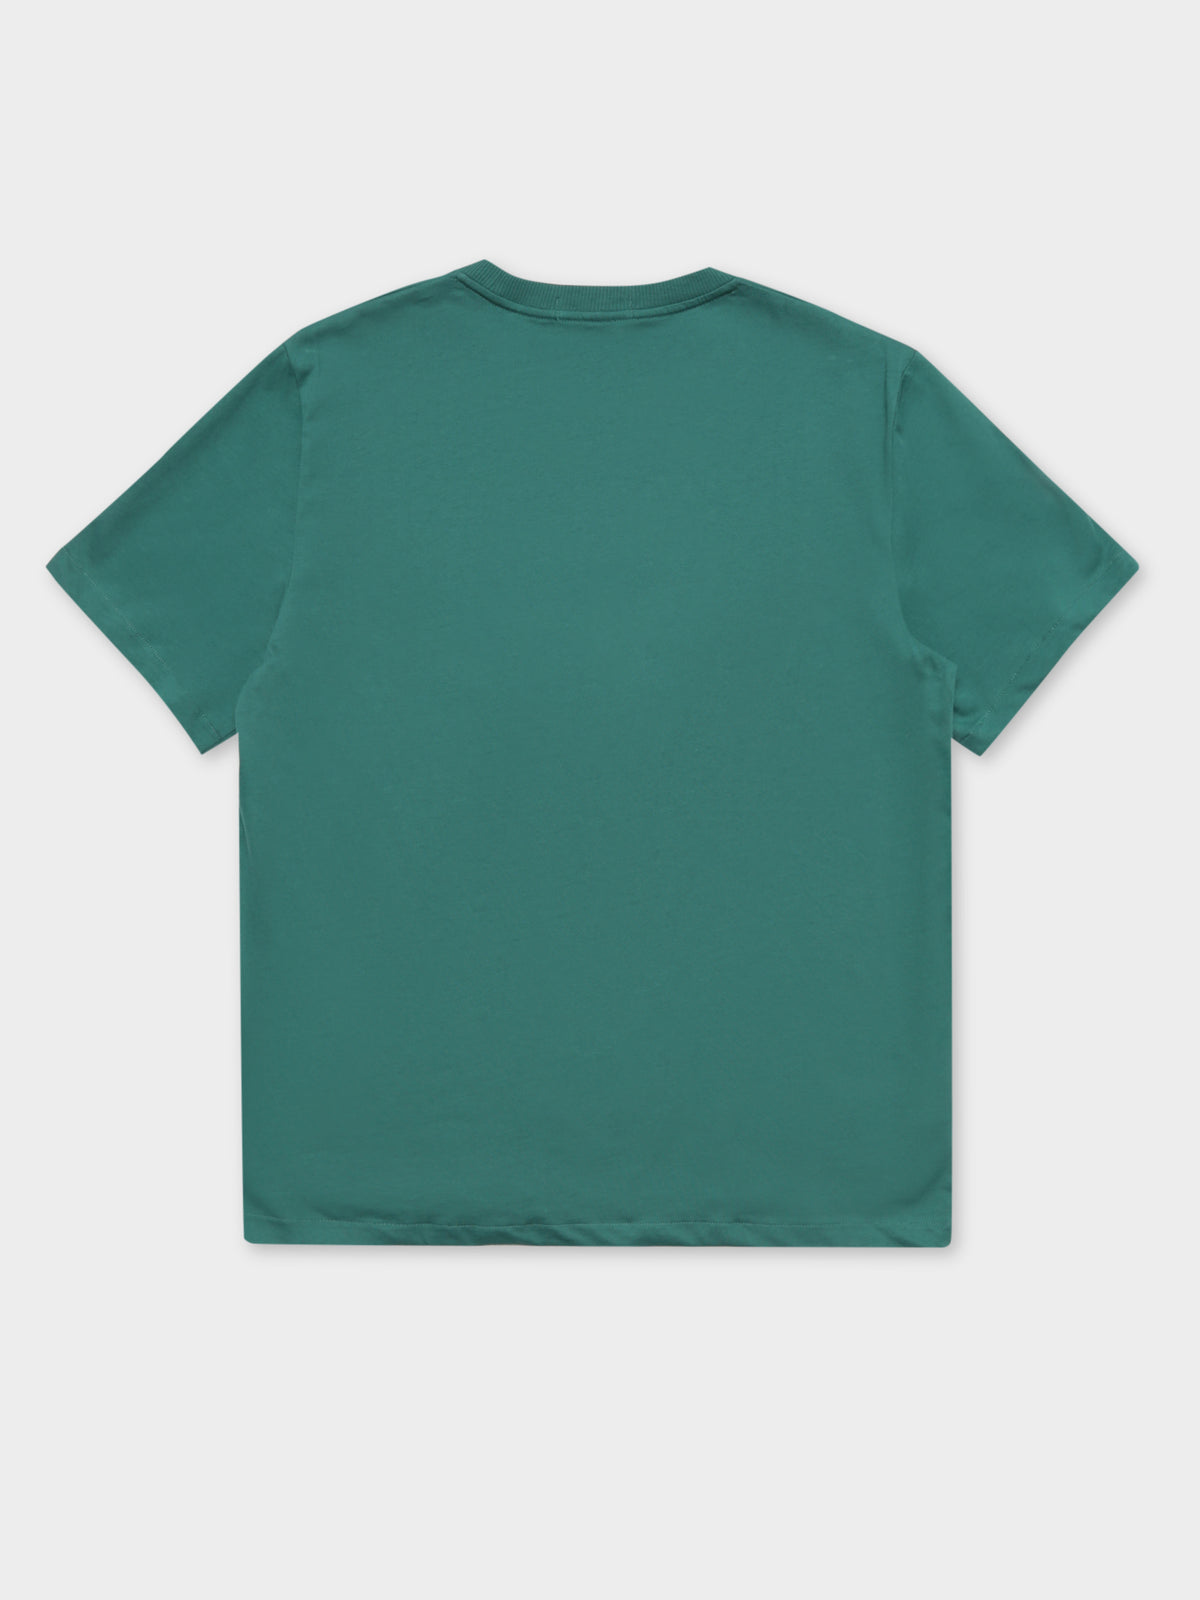 Graphic T-Shirt in Light Petrol